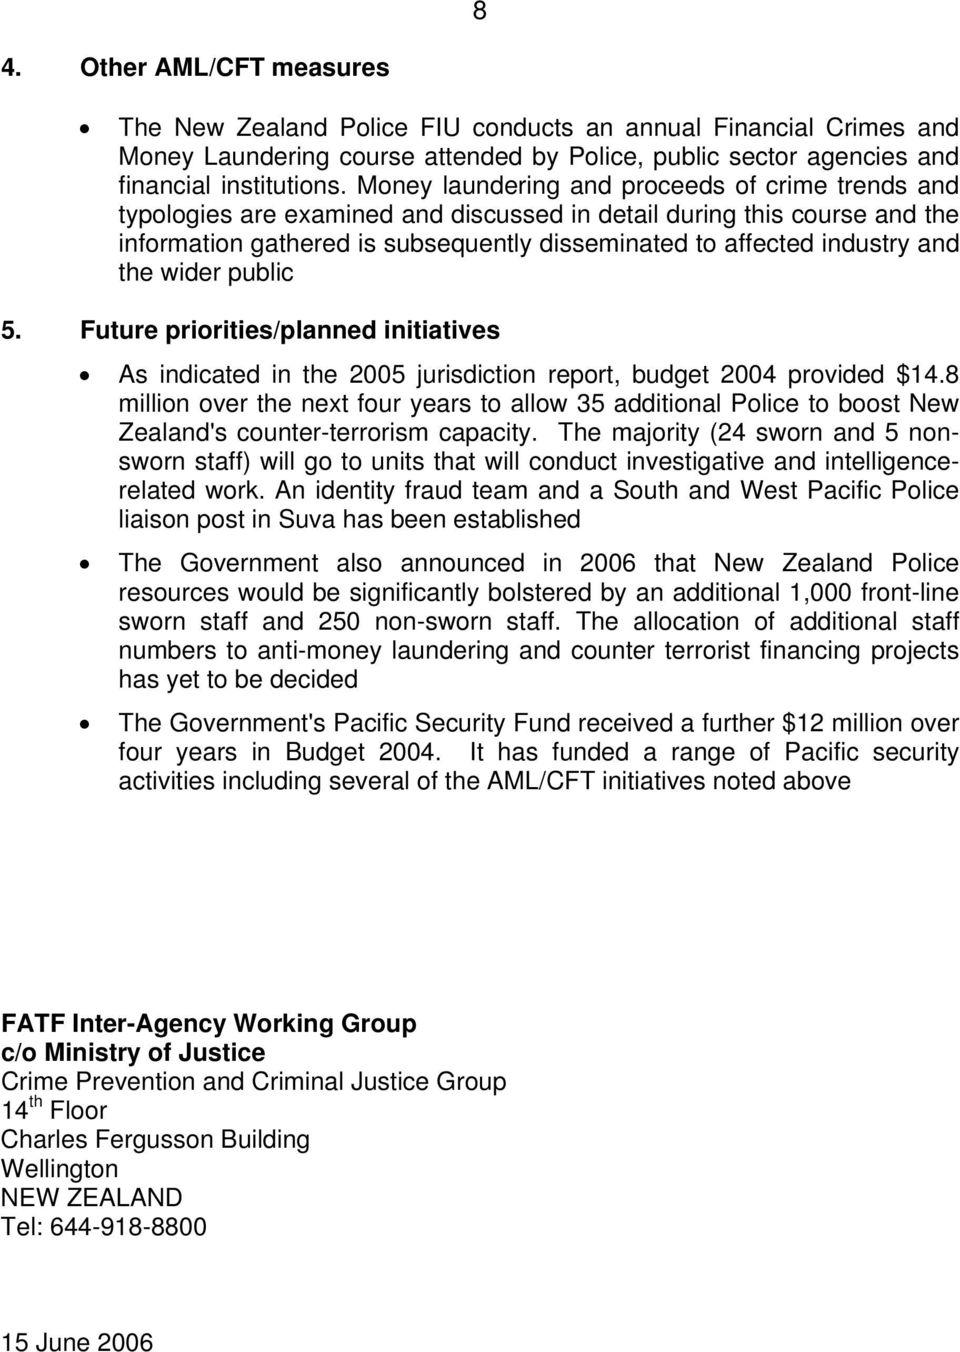 the wider public 5. Future priorities/planned initiatives As indicated in the 2005 jurisdiction report, budget 2004 provided $14.